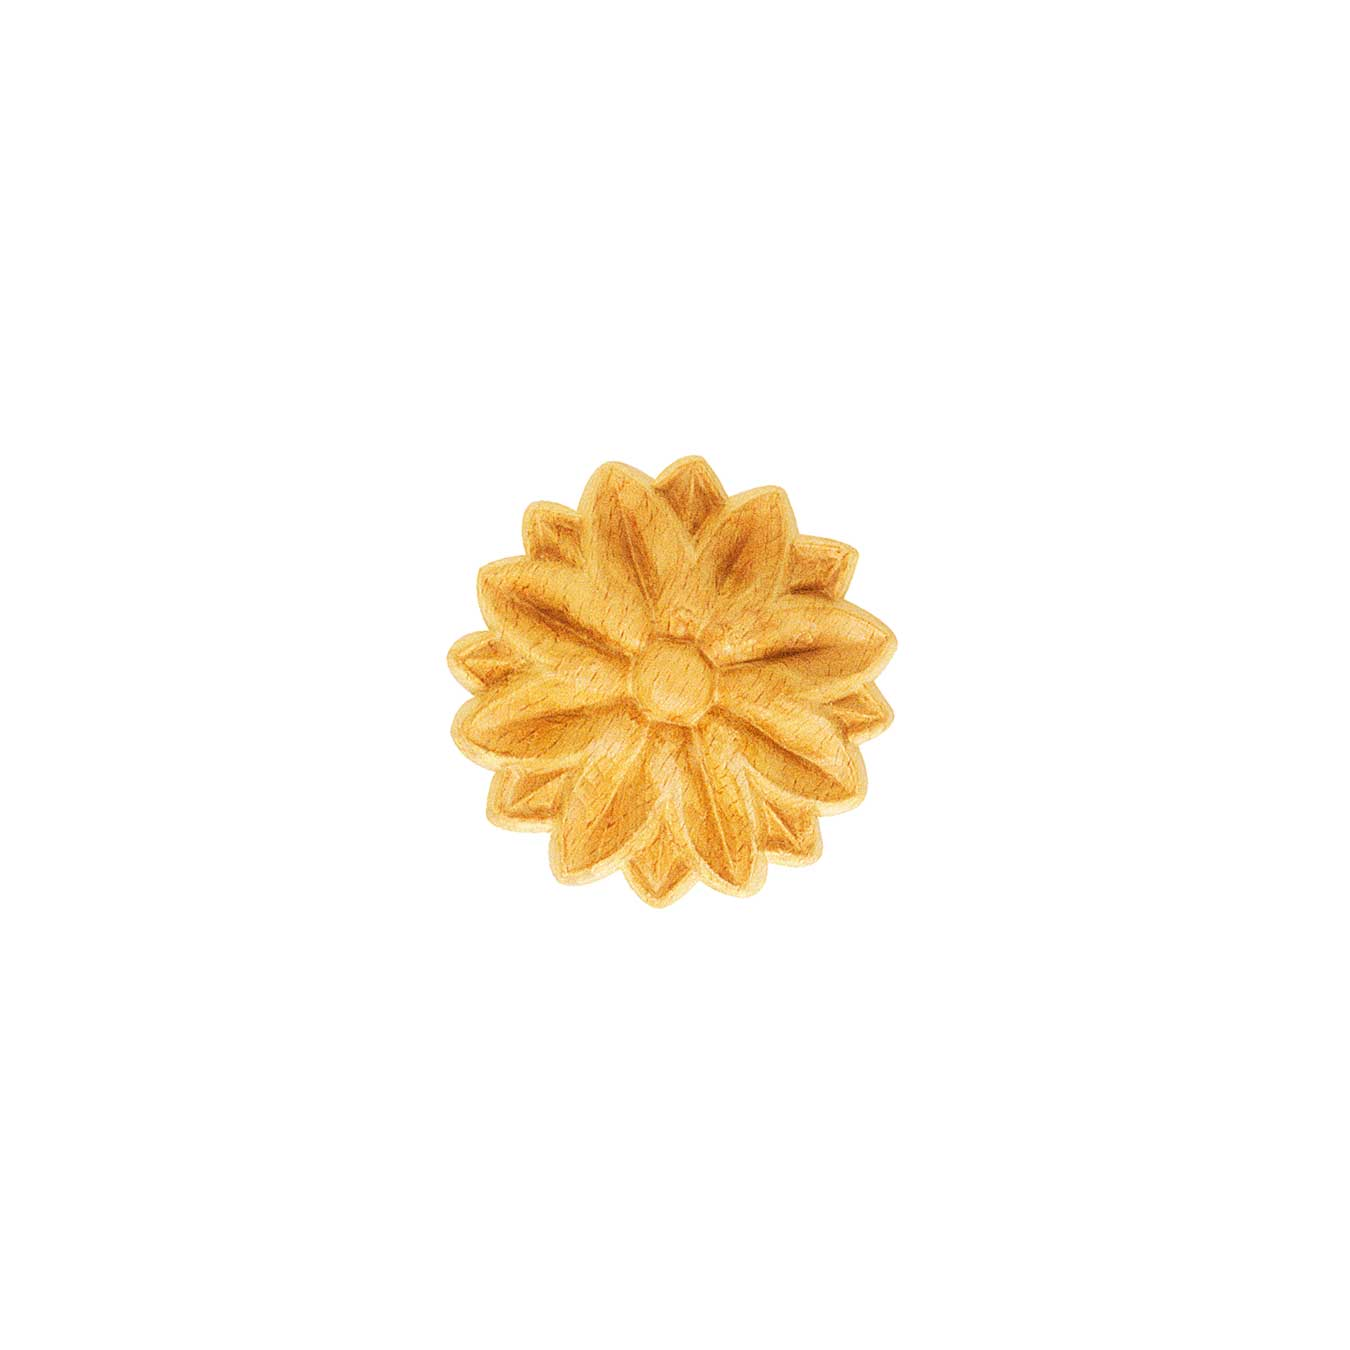 Small round rosettes